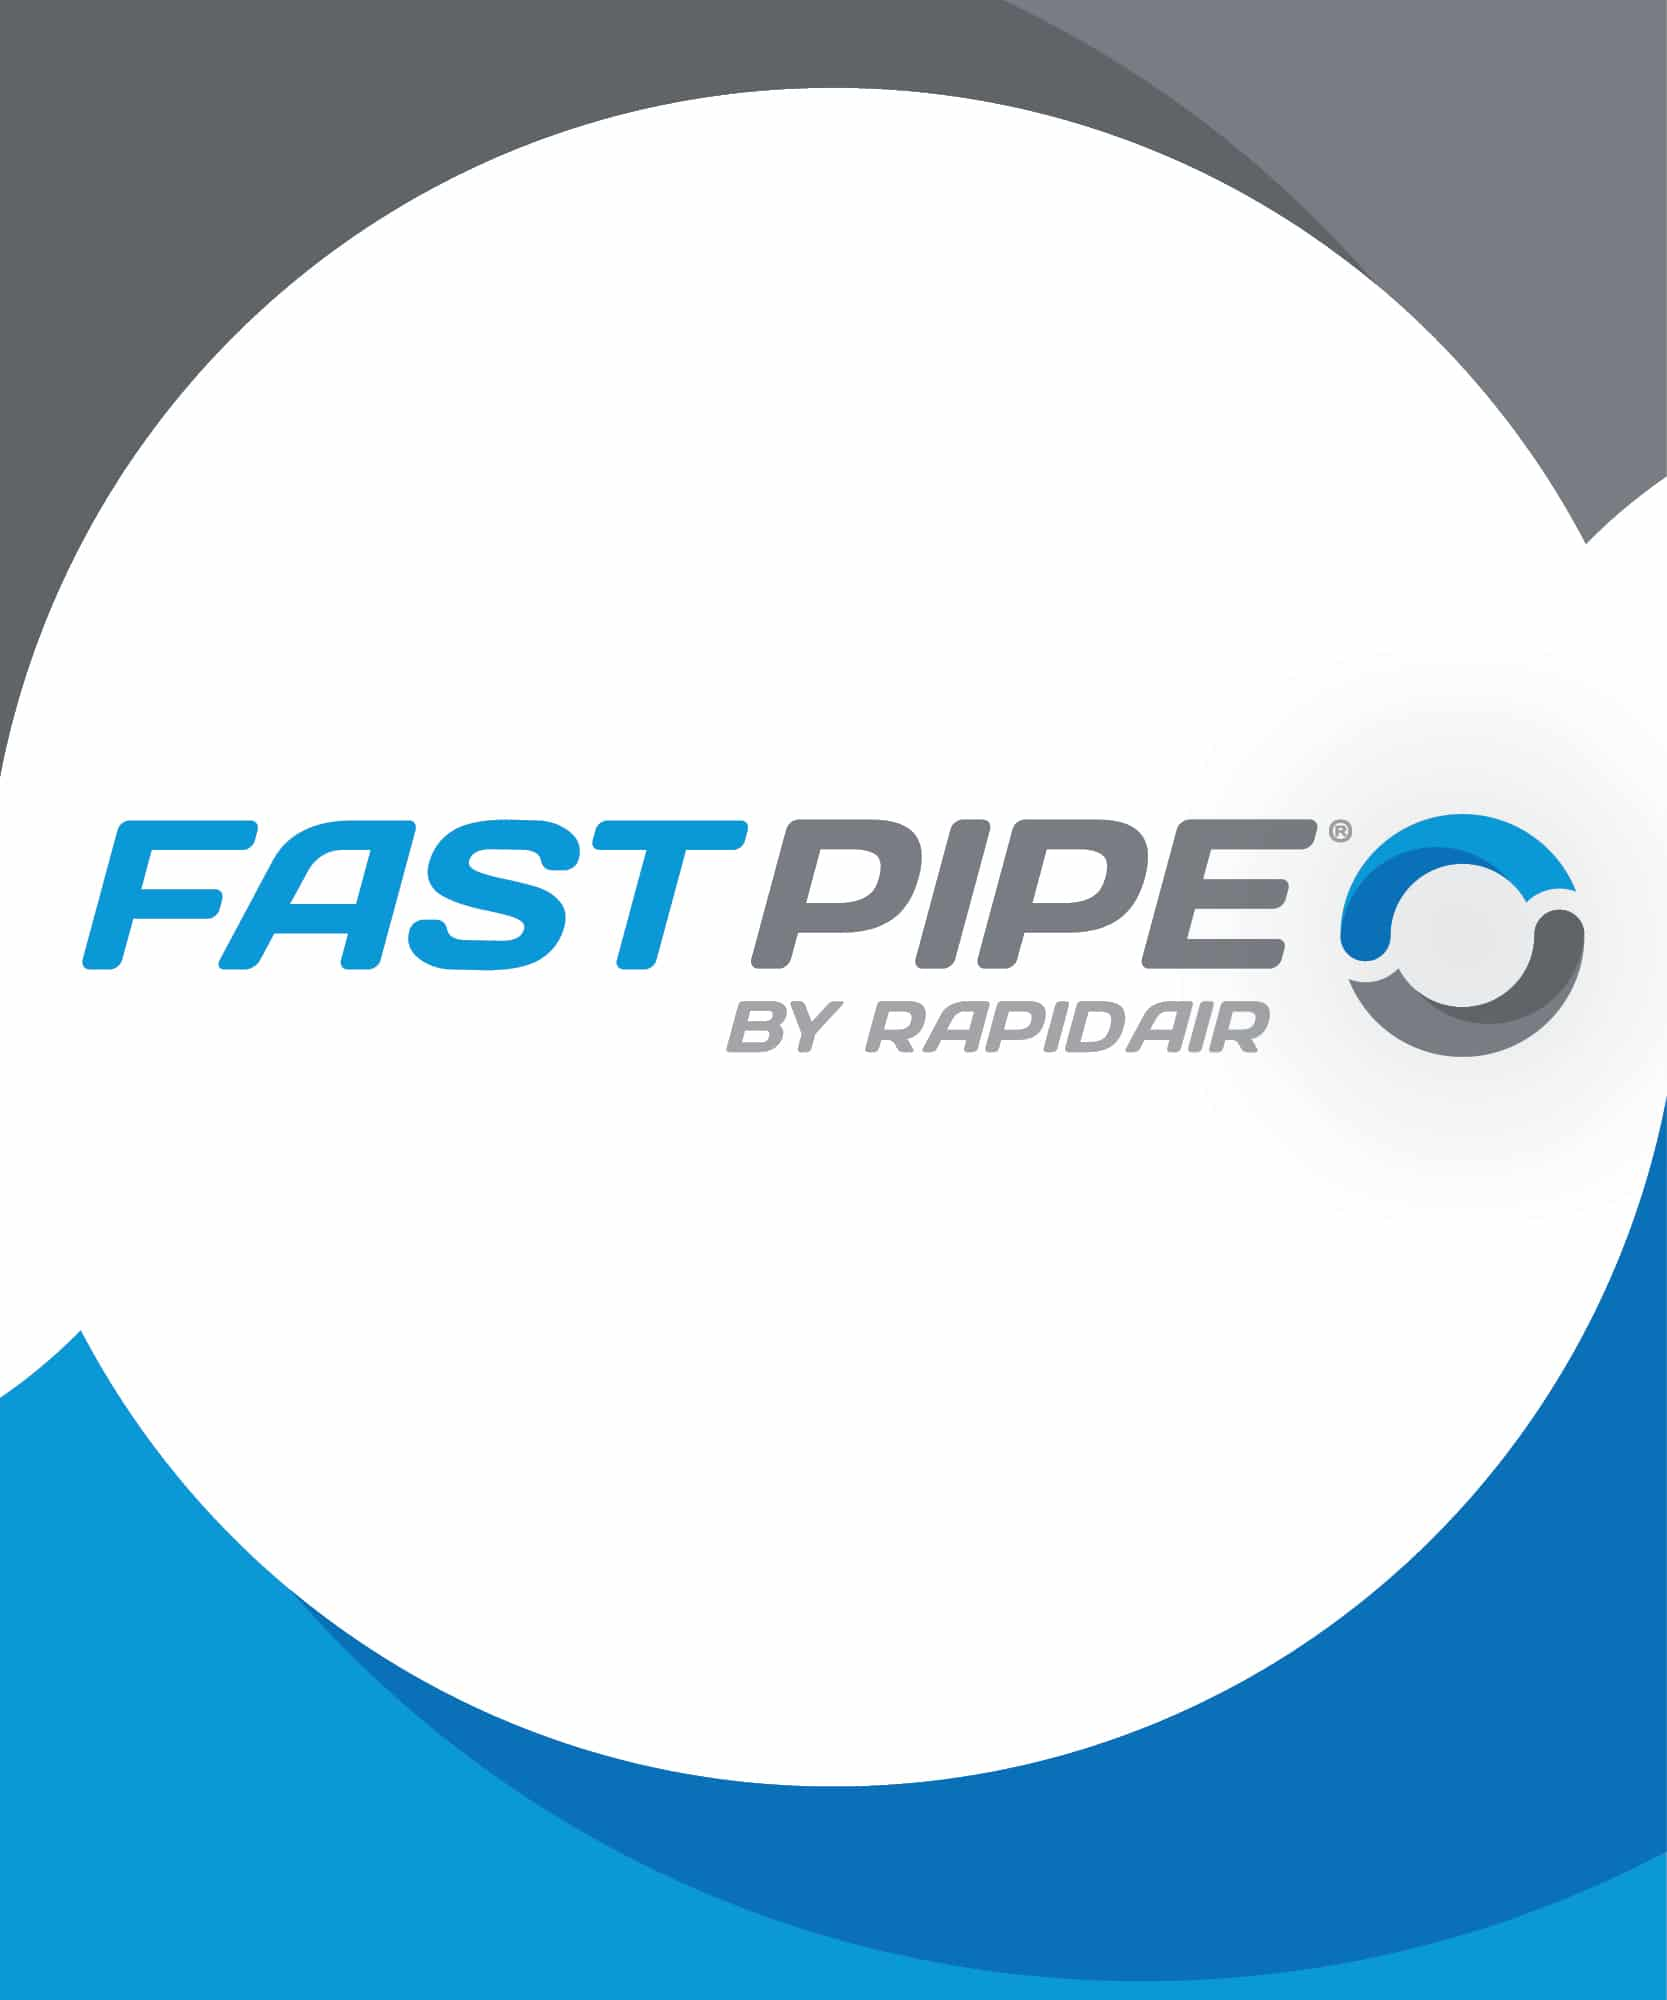 Fast Pipe